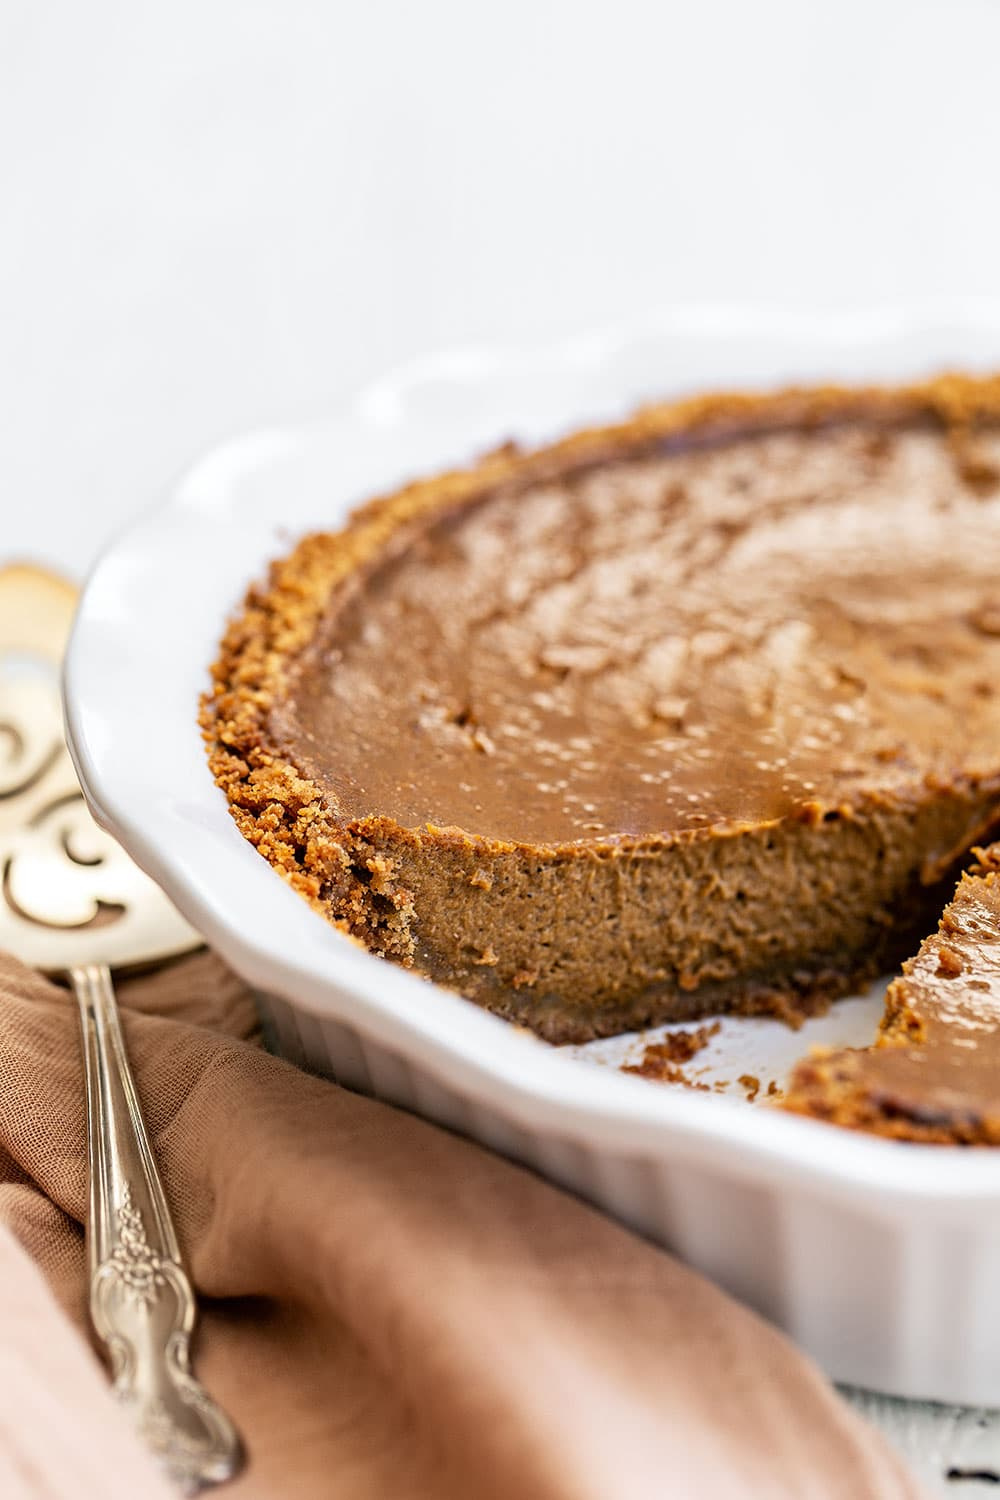 Quick and easy pumpkin pie in a pie dish with a slice removed